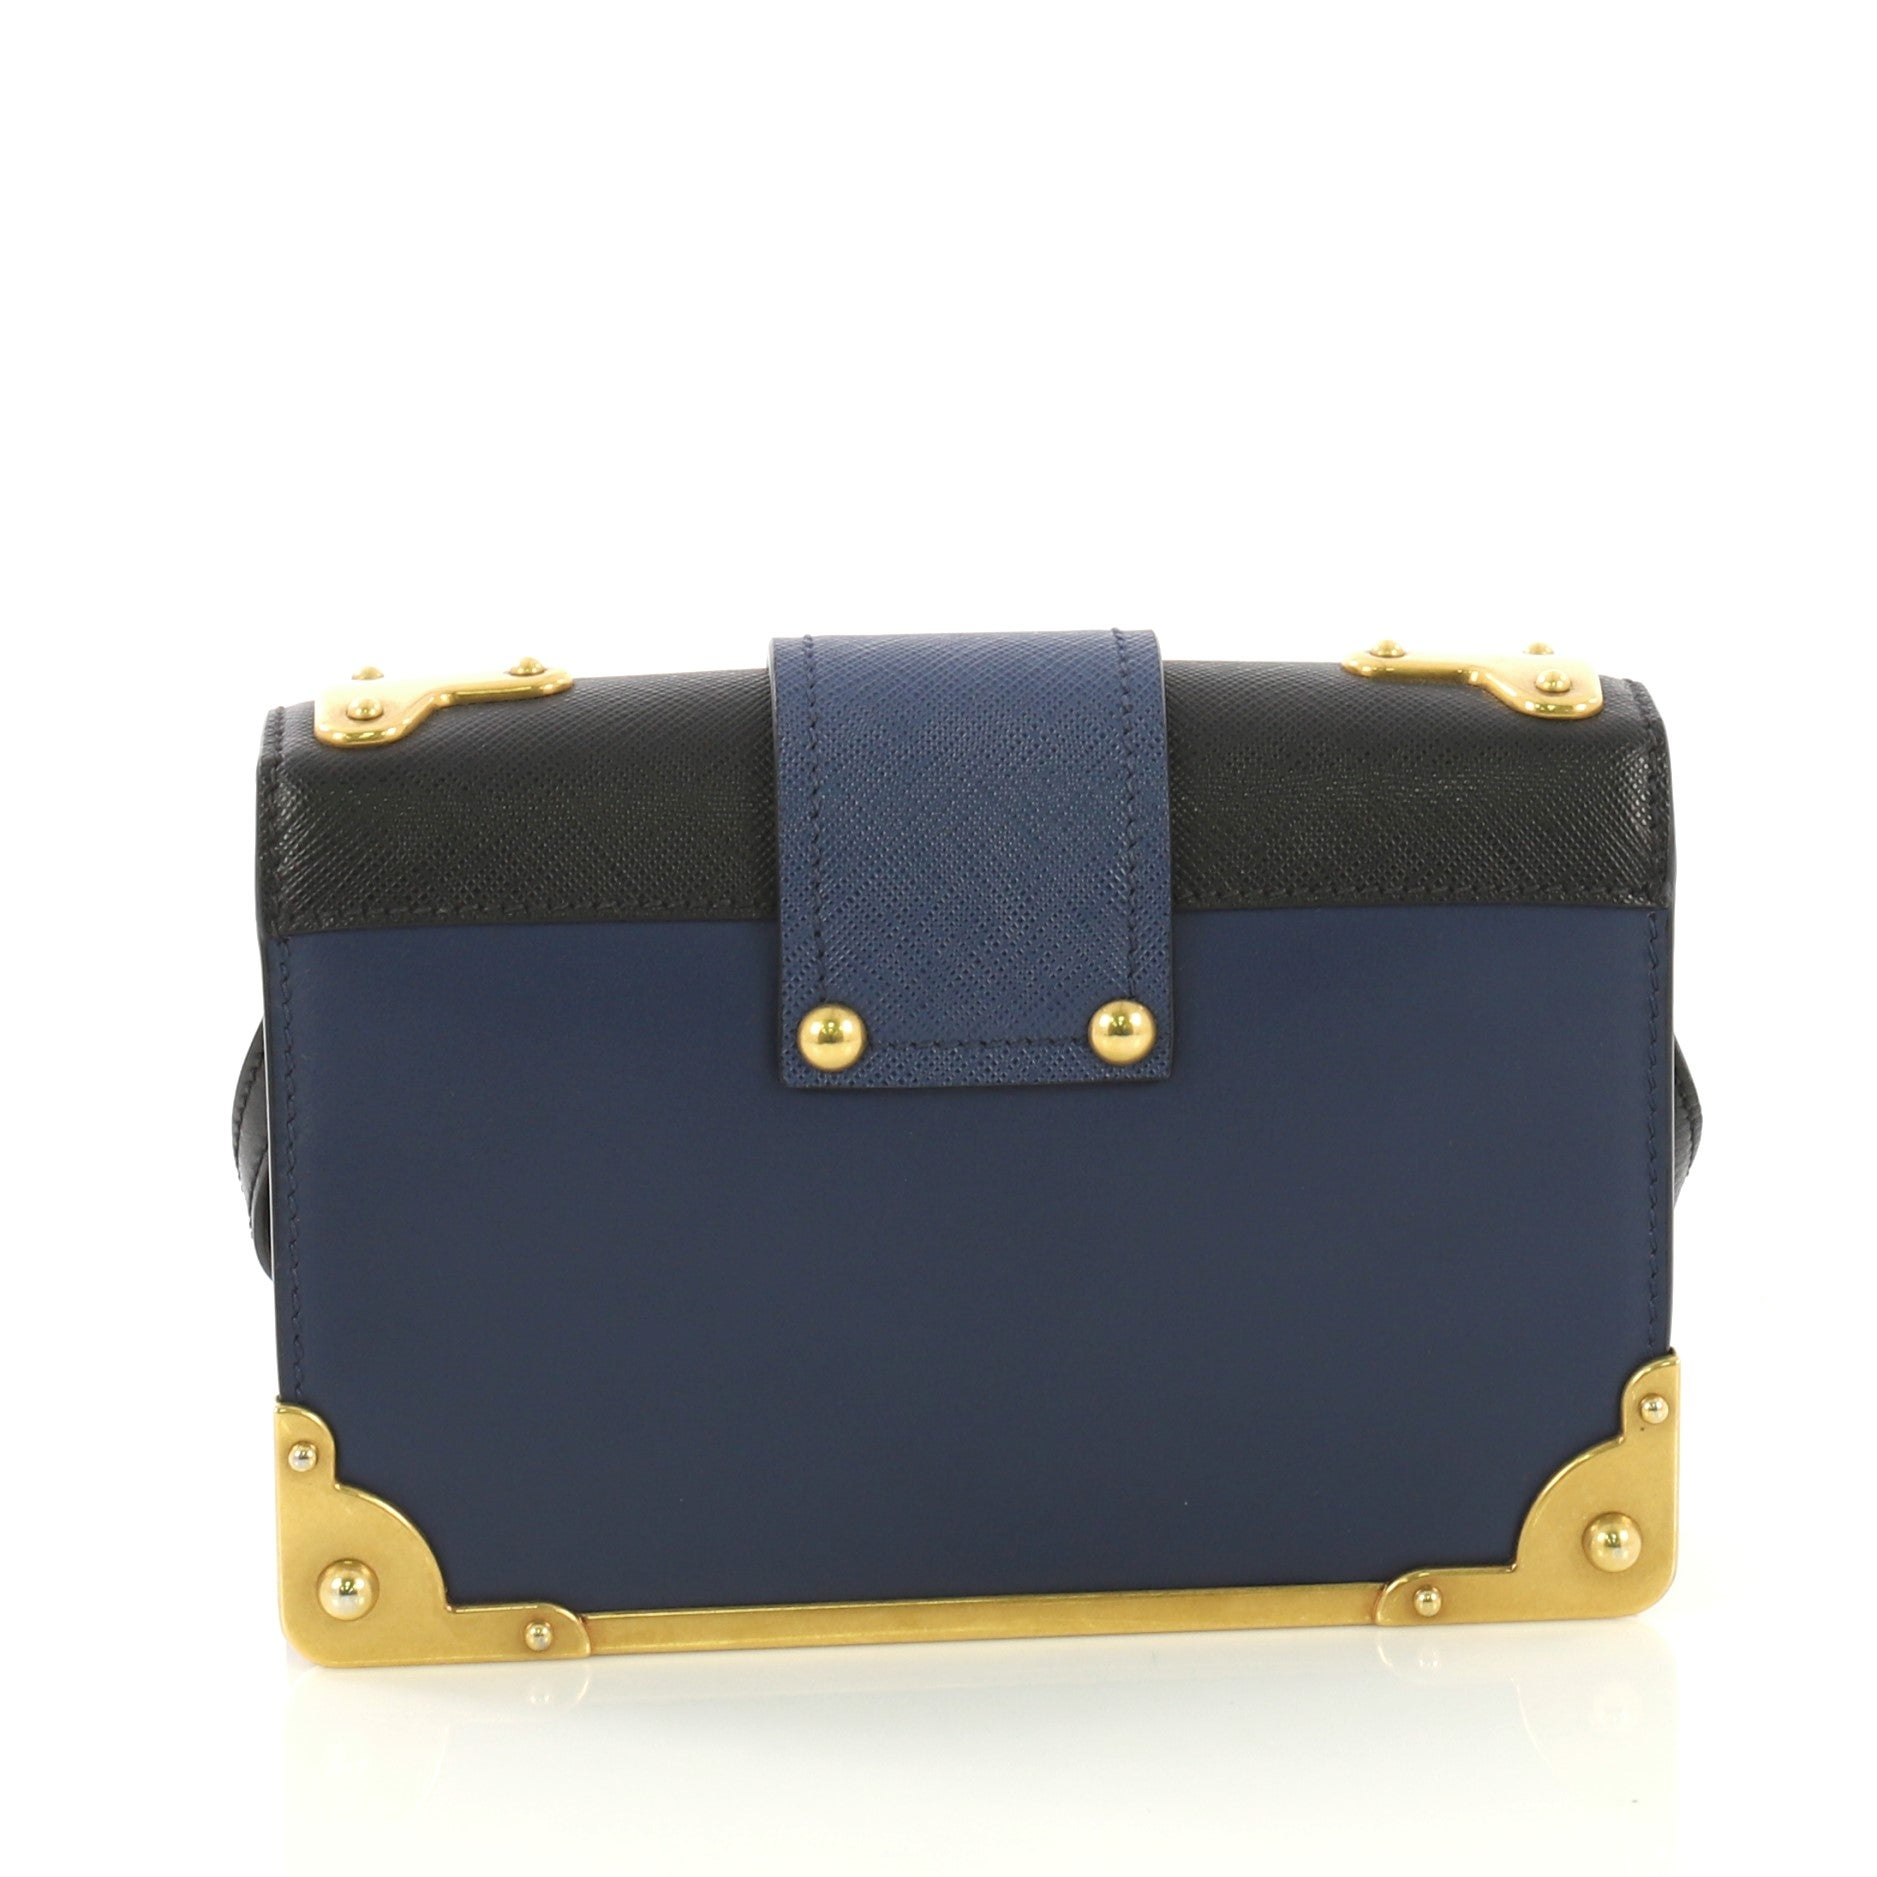 97078d5ad957b1 Prada Cahier Crossbody Bag Embellished Leather Small For Sale at 1stdibs